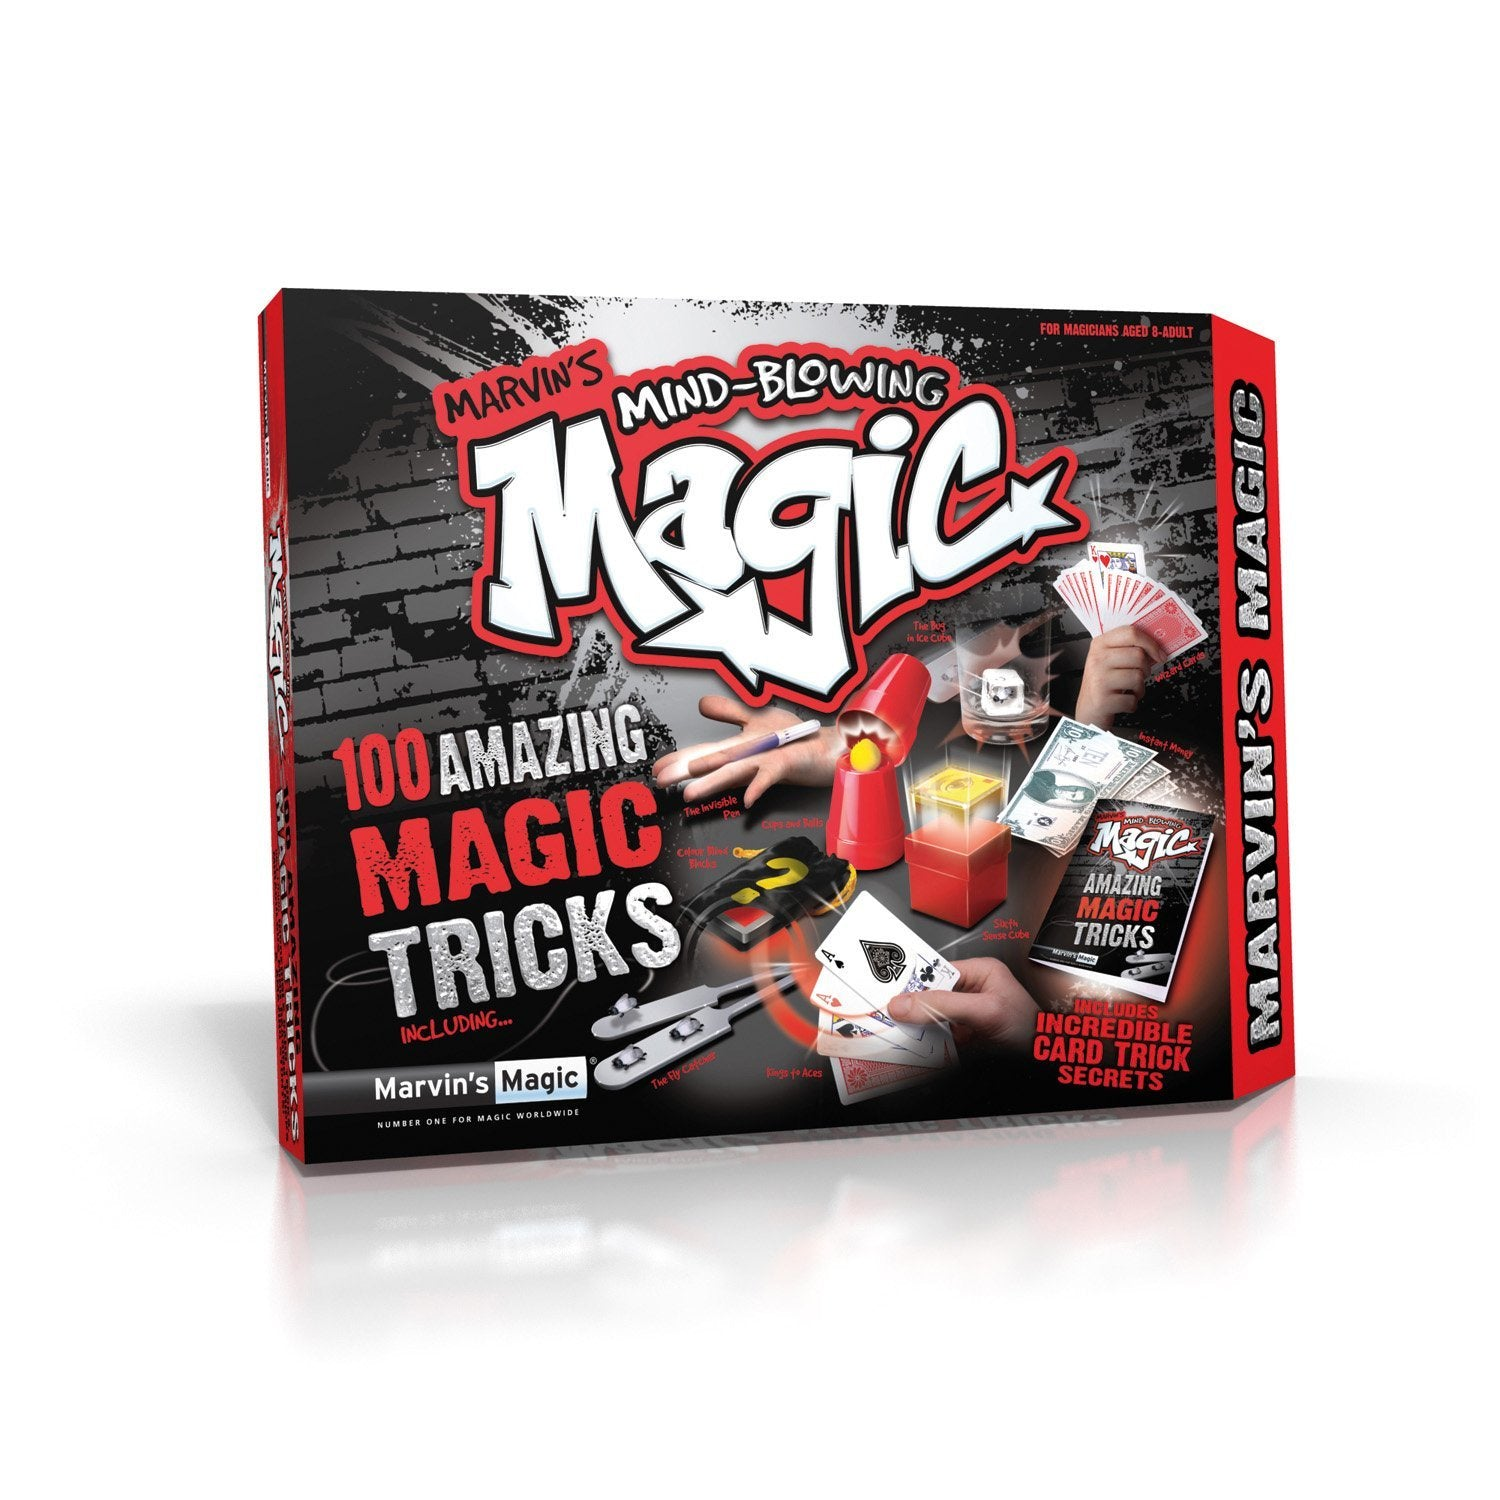 Marvin's Magic 100 Amazing Mind-Blowing Magic Tricks